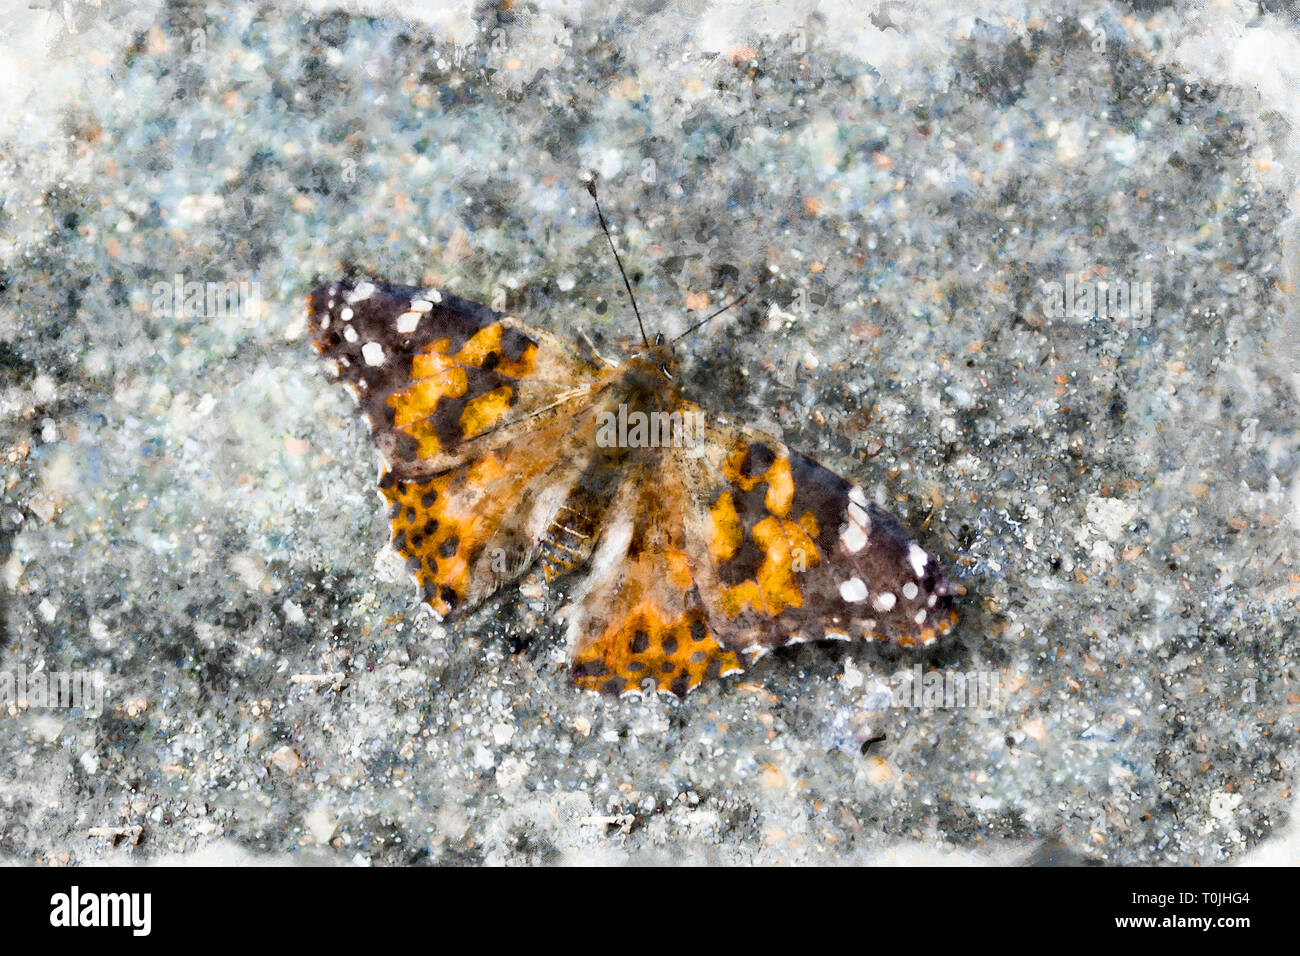 Stylised image of a Painted Lady butterfly basking on a paving stone - Stock Image